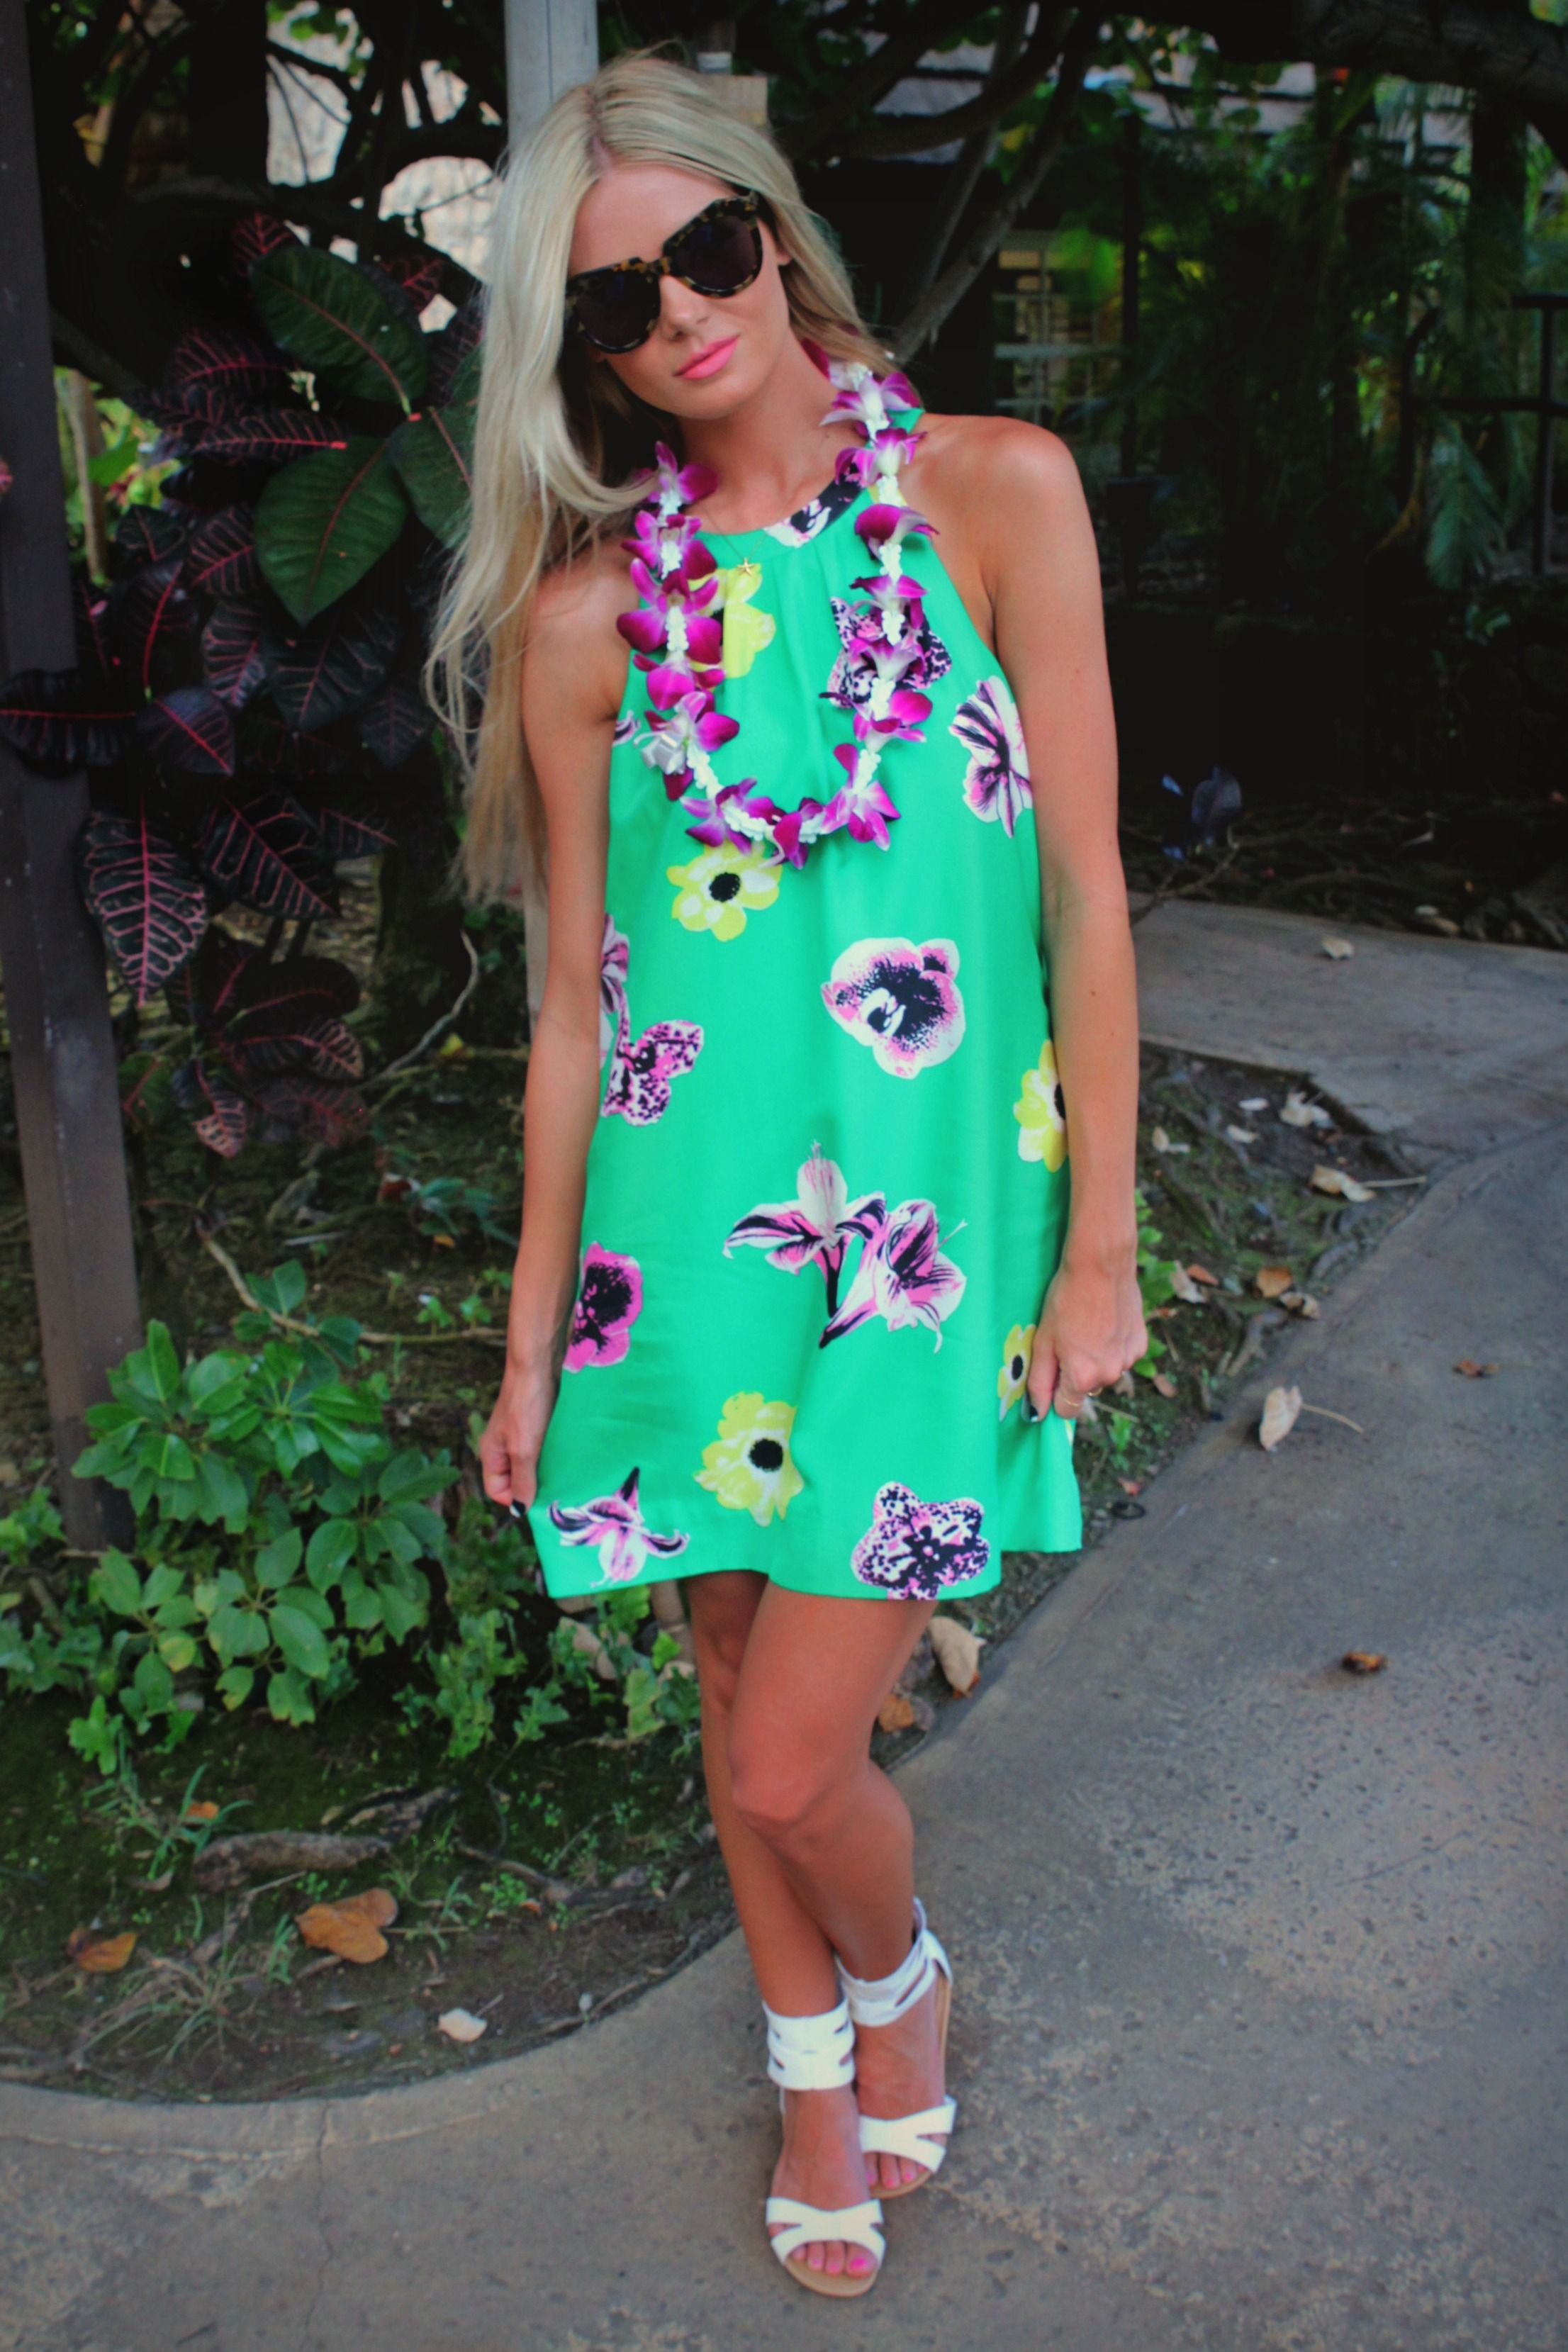 Luau | Luau dress, Luau and Floral